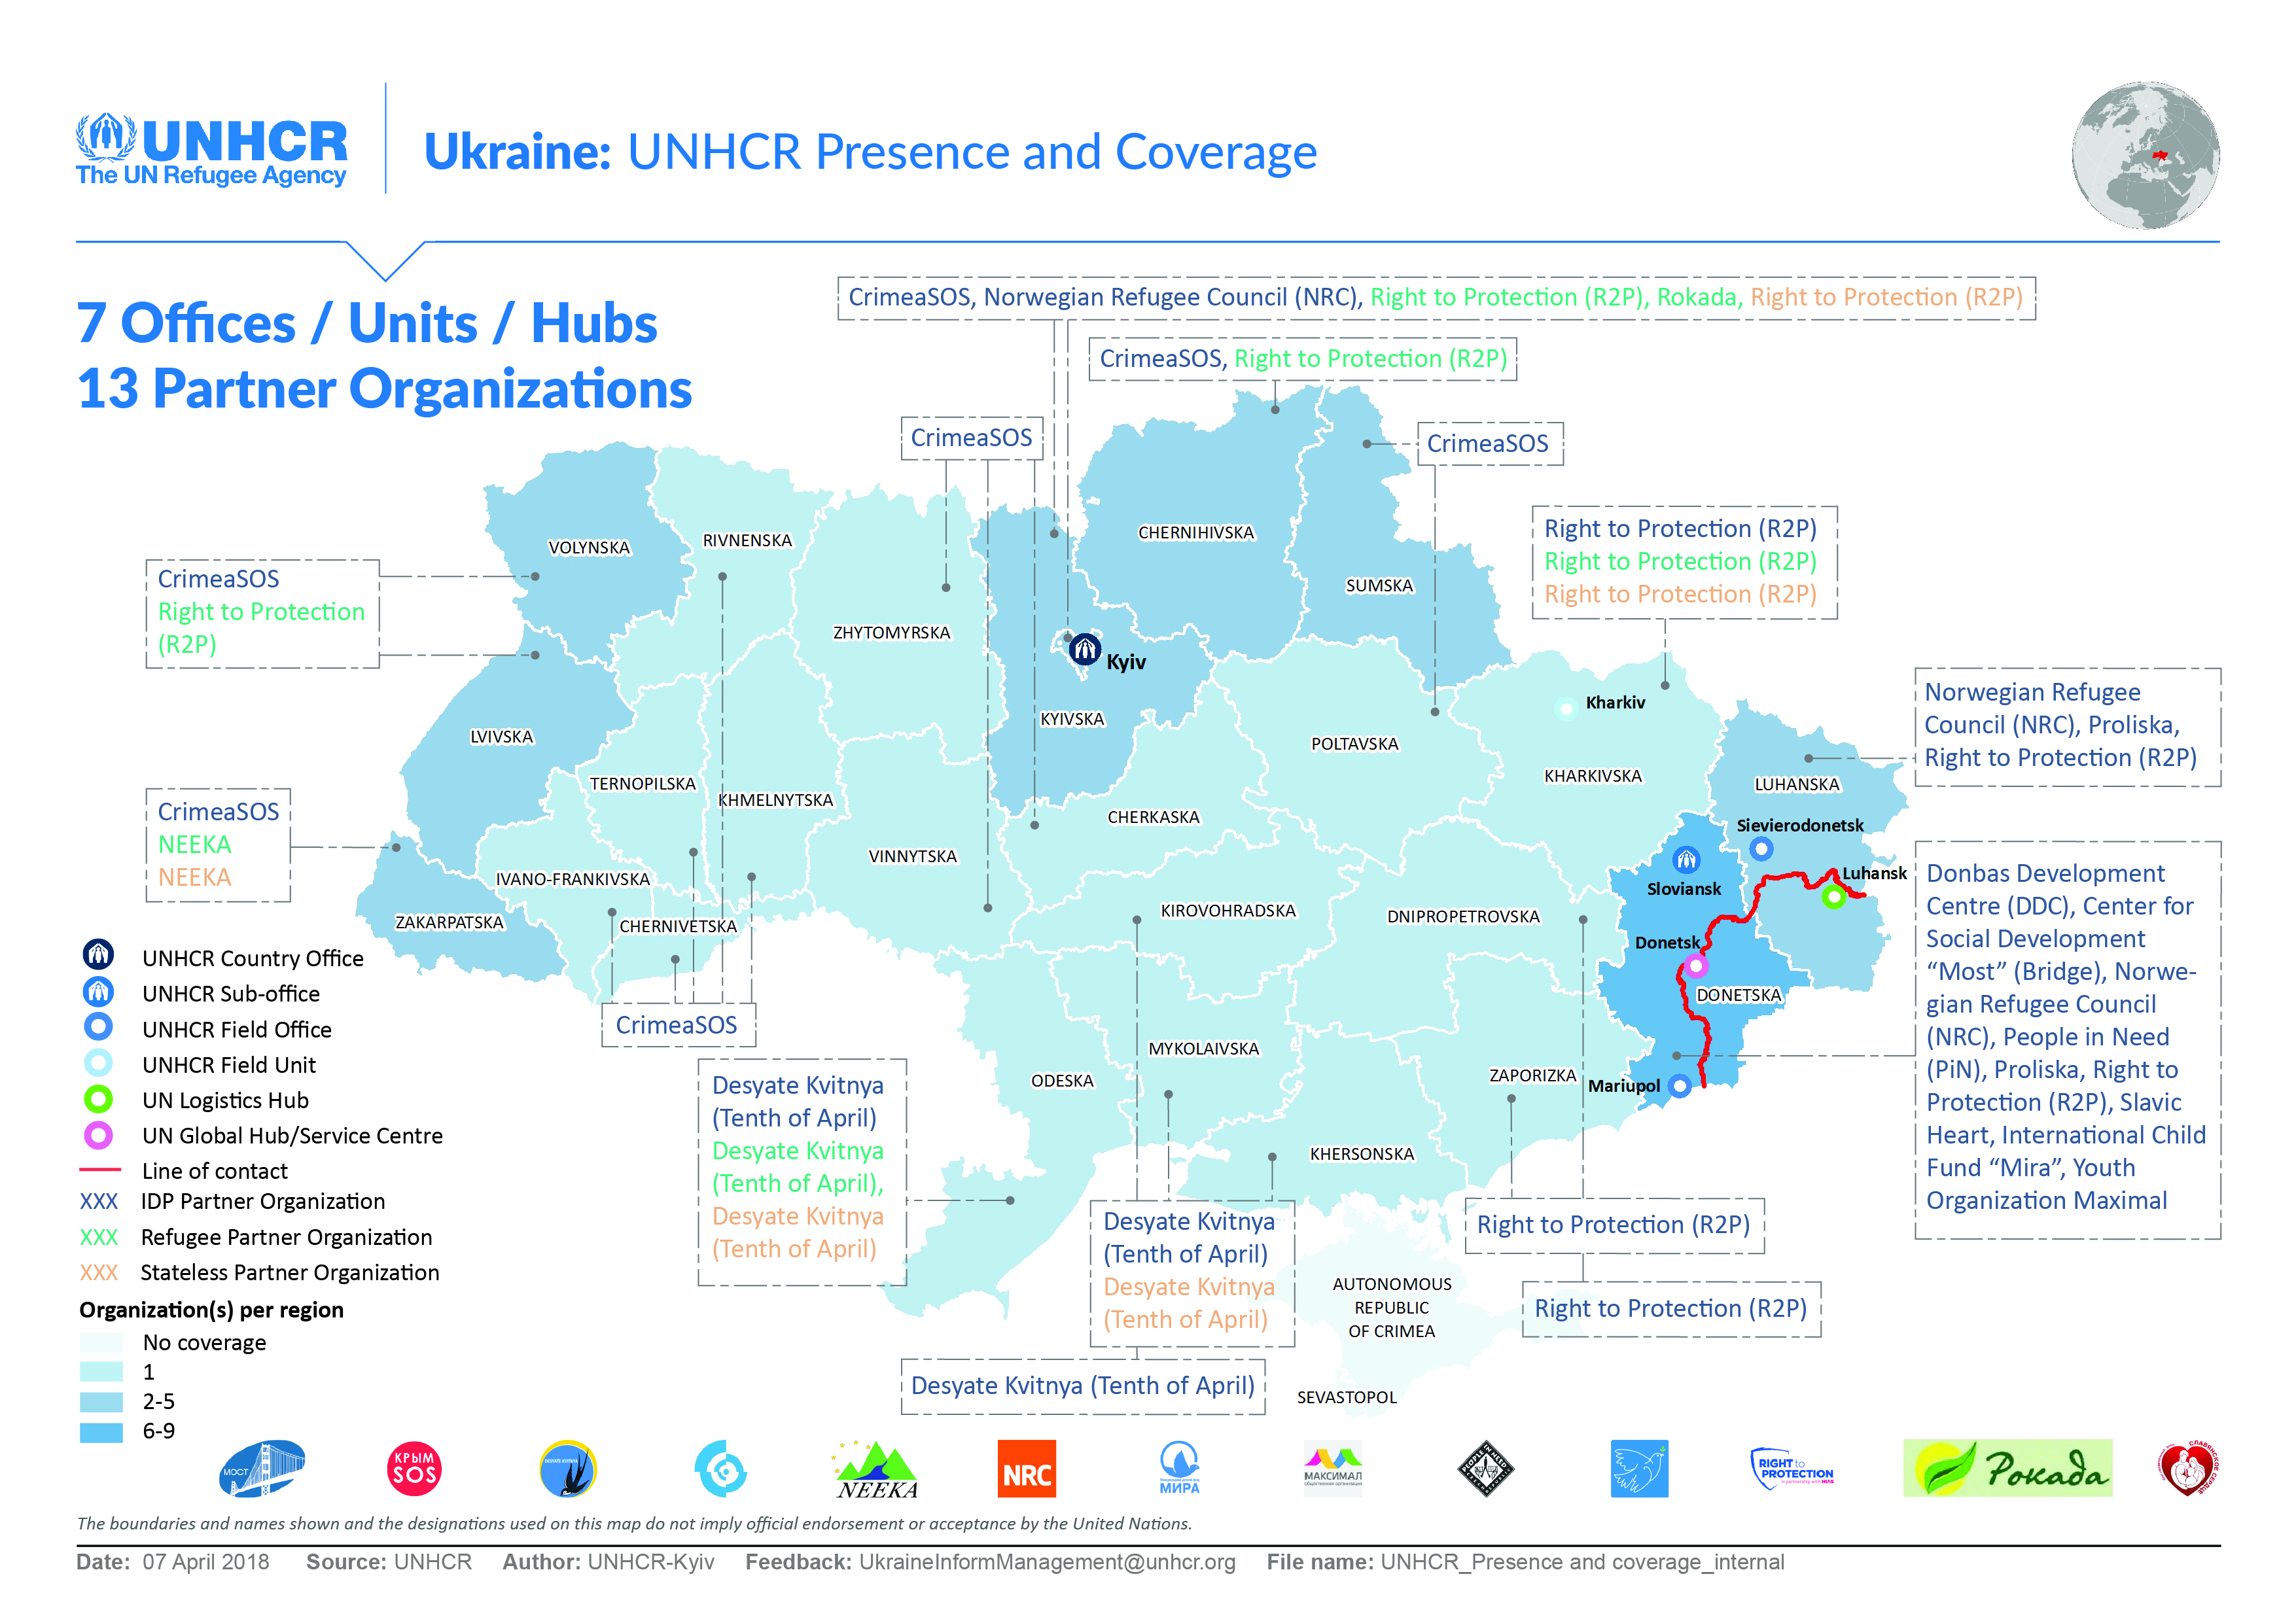 Evacuators in the Luhansk region: a selection of sites